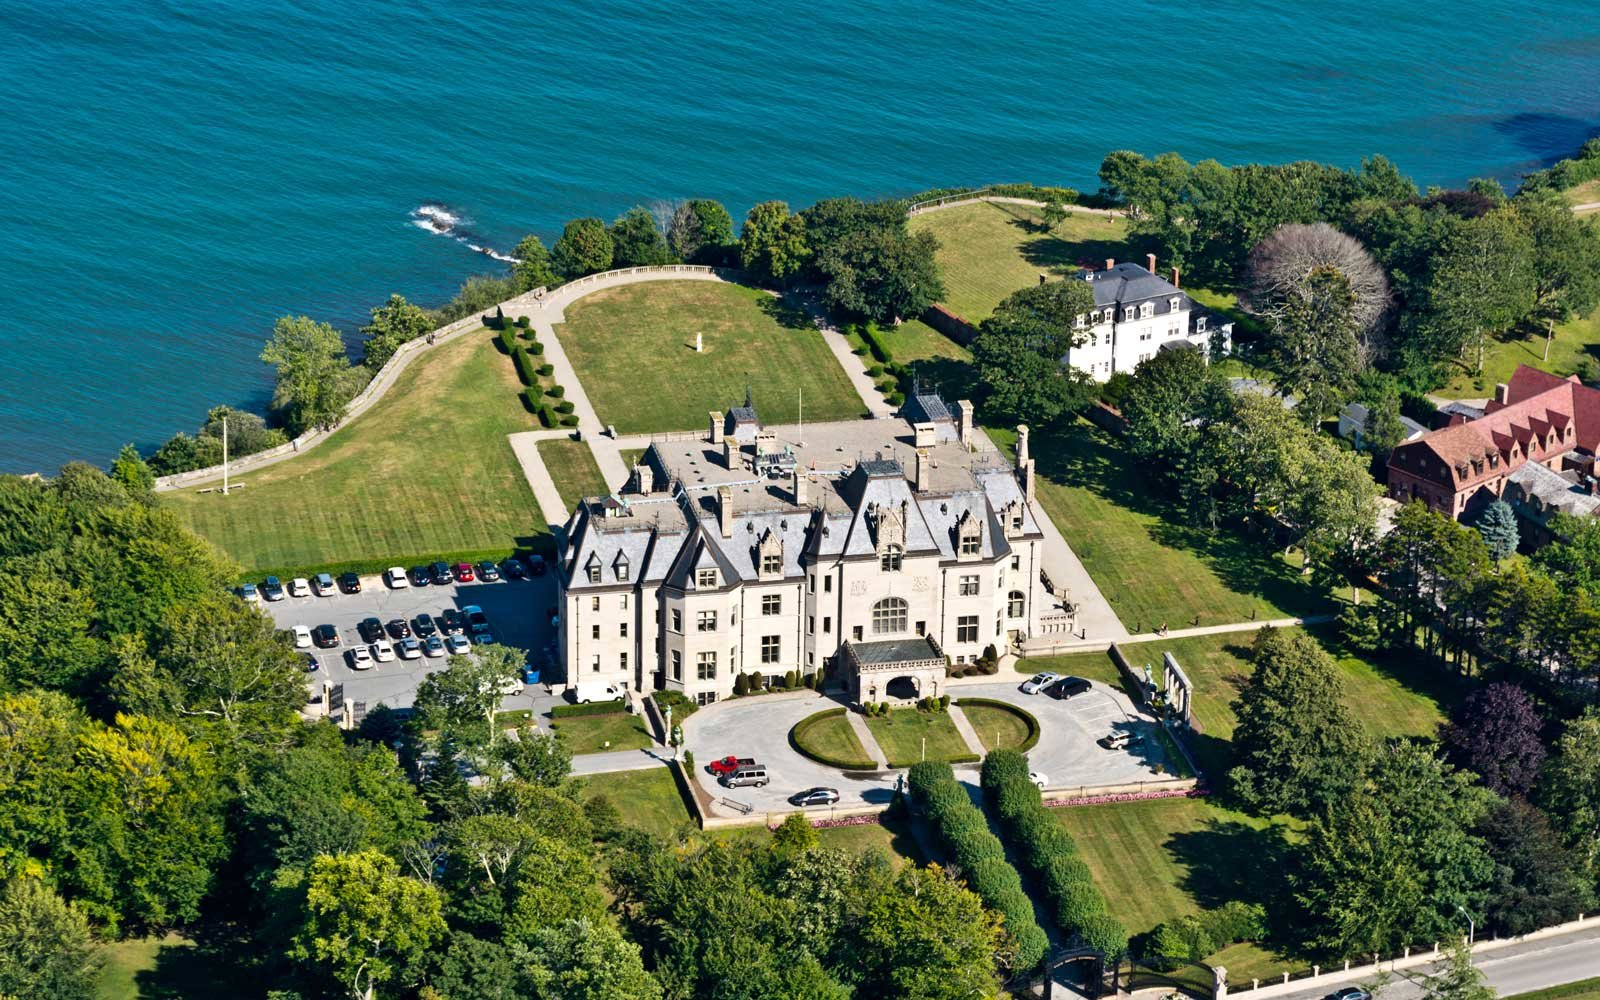 A mansion at 52 Ochre Point Ave. Newport, RI